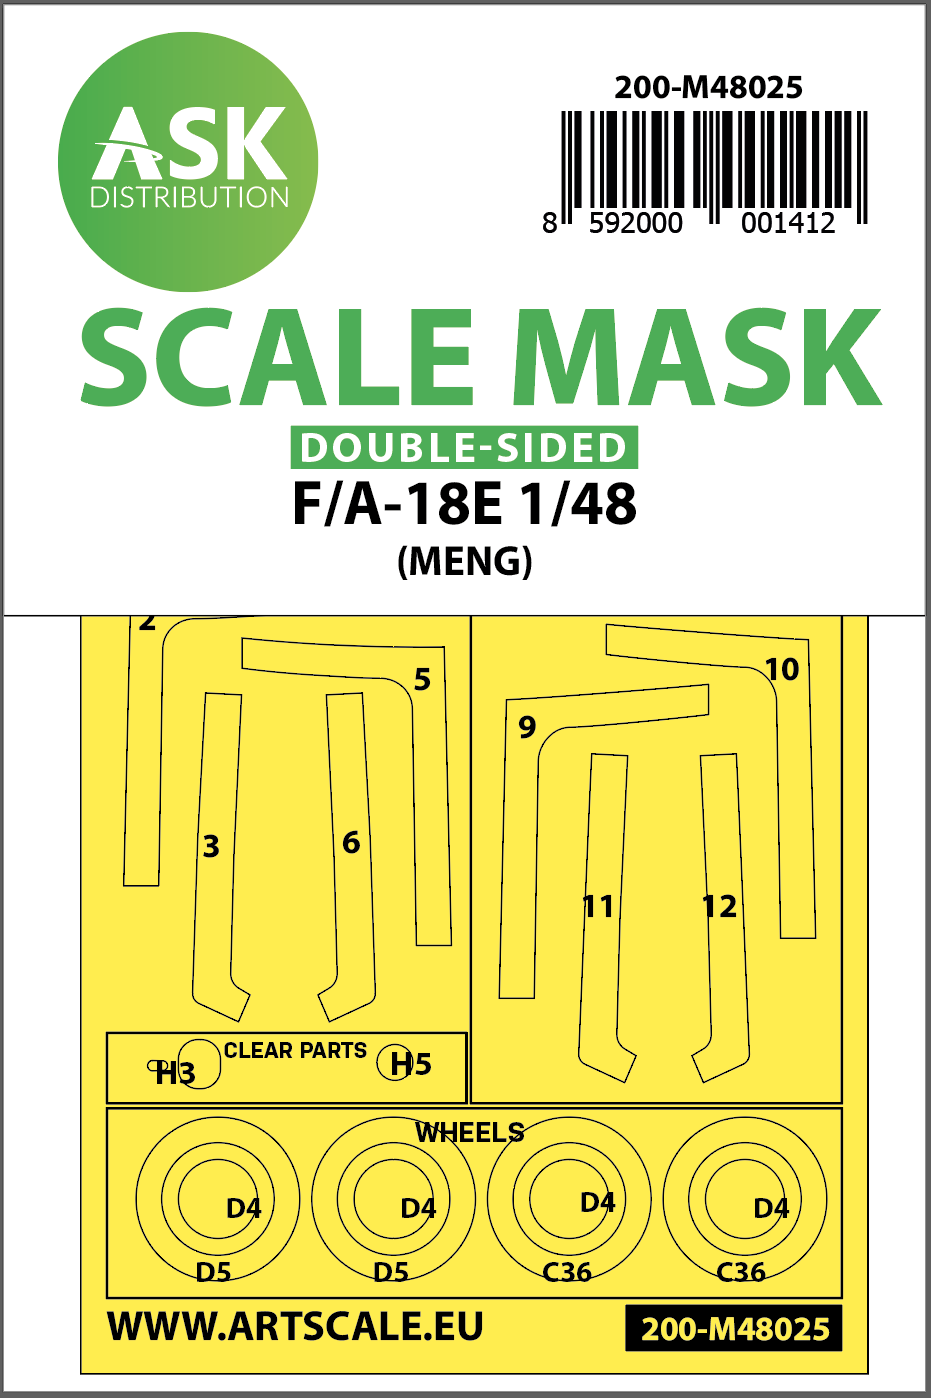 1/48 F/A-18E double-sided painting mask for Meng